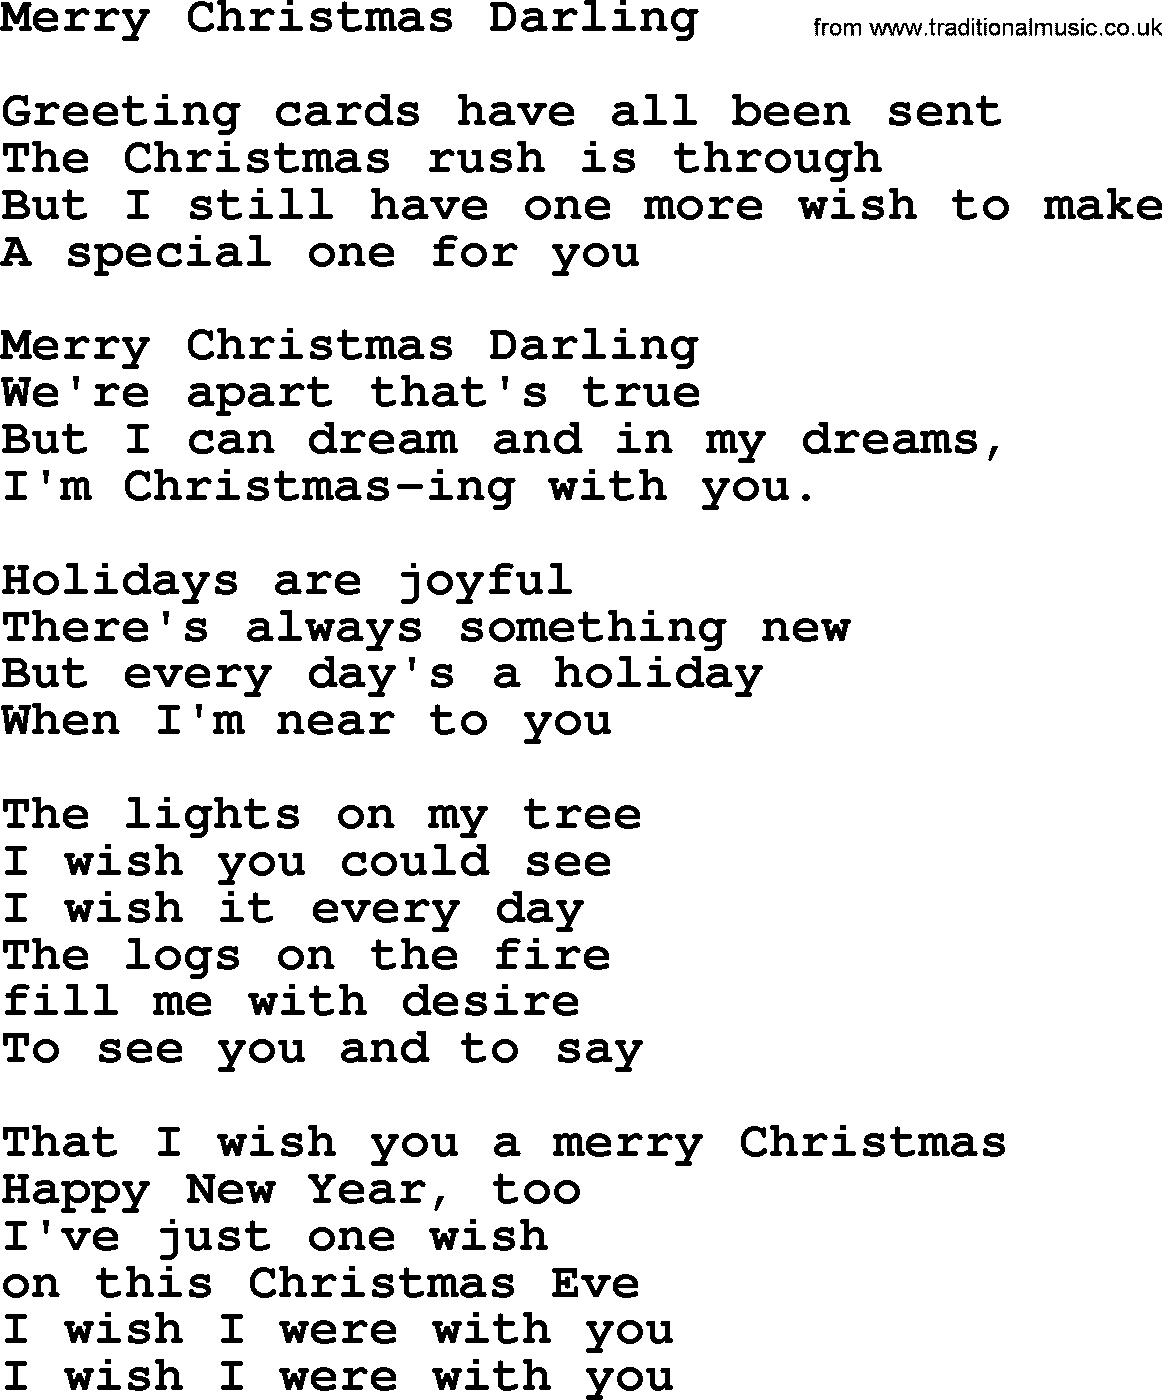 Catholic hymns song merry christmas darling lyrics and pdf catholic hymn merry christmas darling lyrics with pdf m4hsunfo